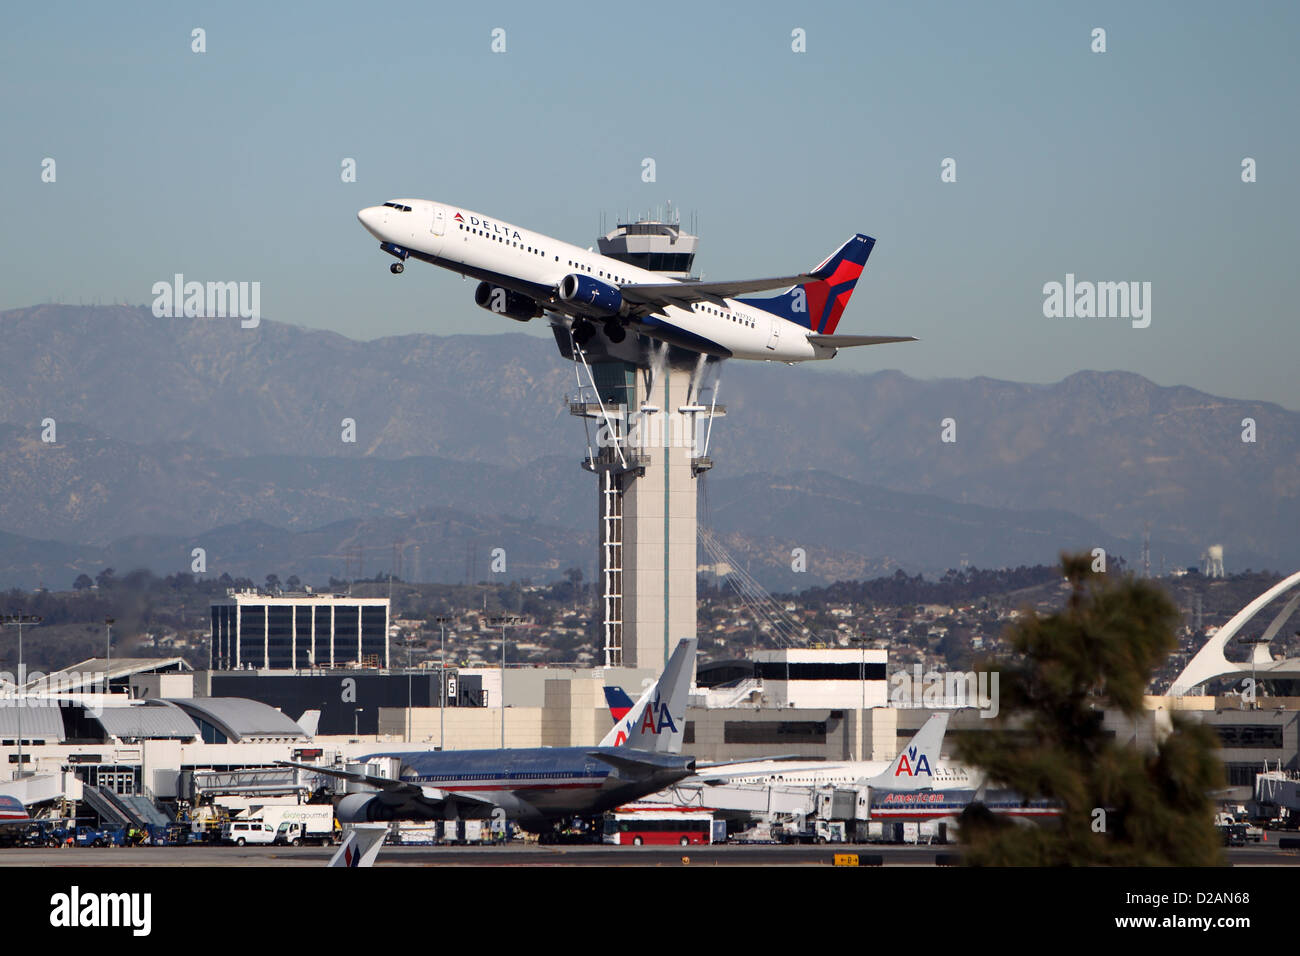 LOS ANGELES, CALIFORNIA, USA - JANUARY 15, 2013 - A Delta Airlines Boeing 737-832 takes off from Los Angeles Airport - Stock Image